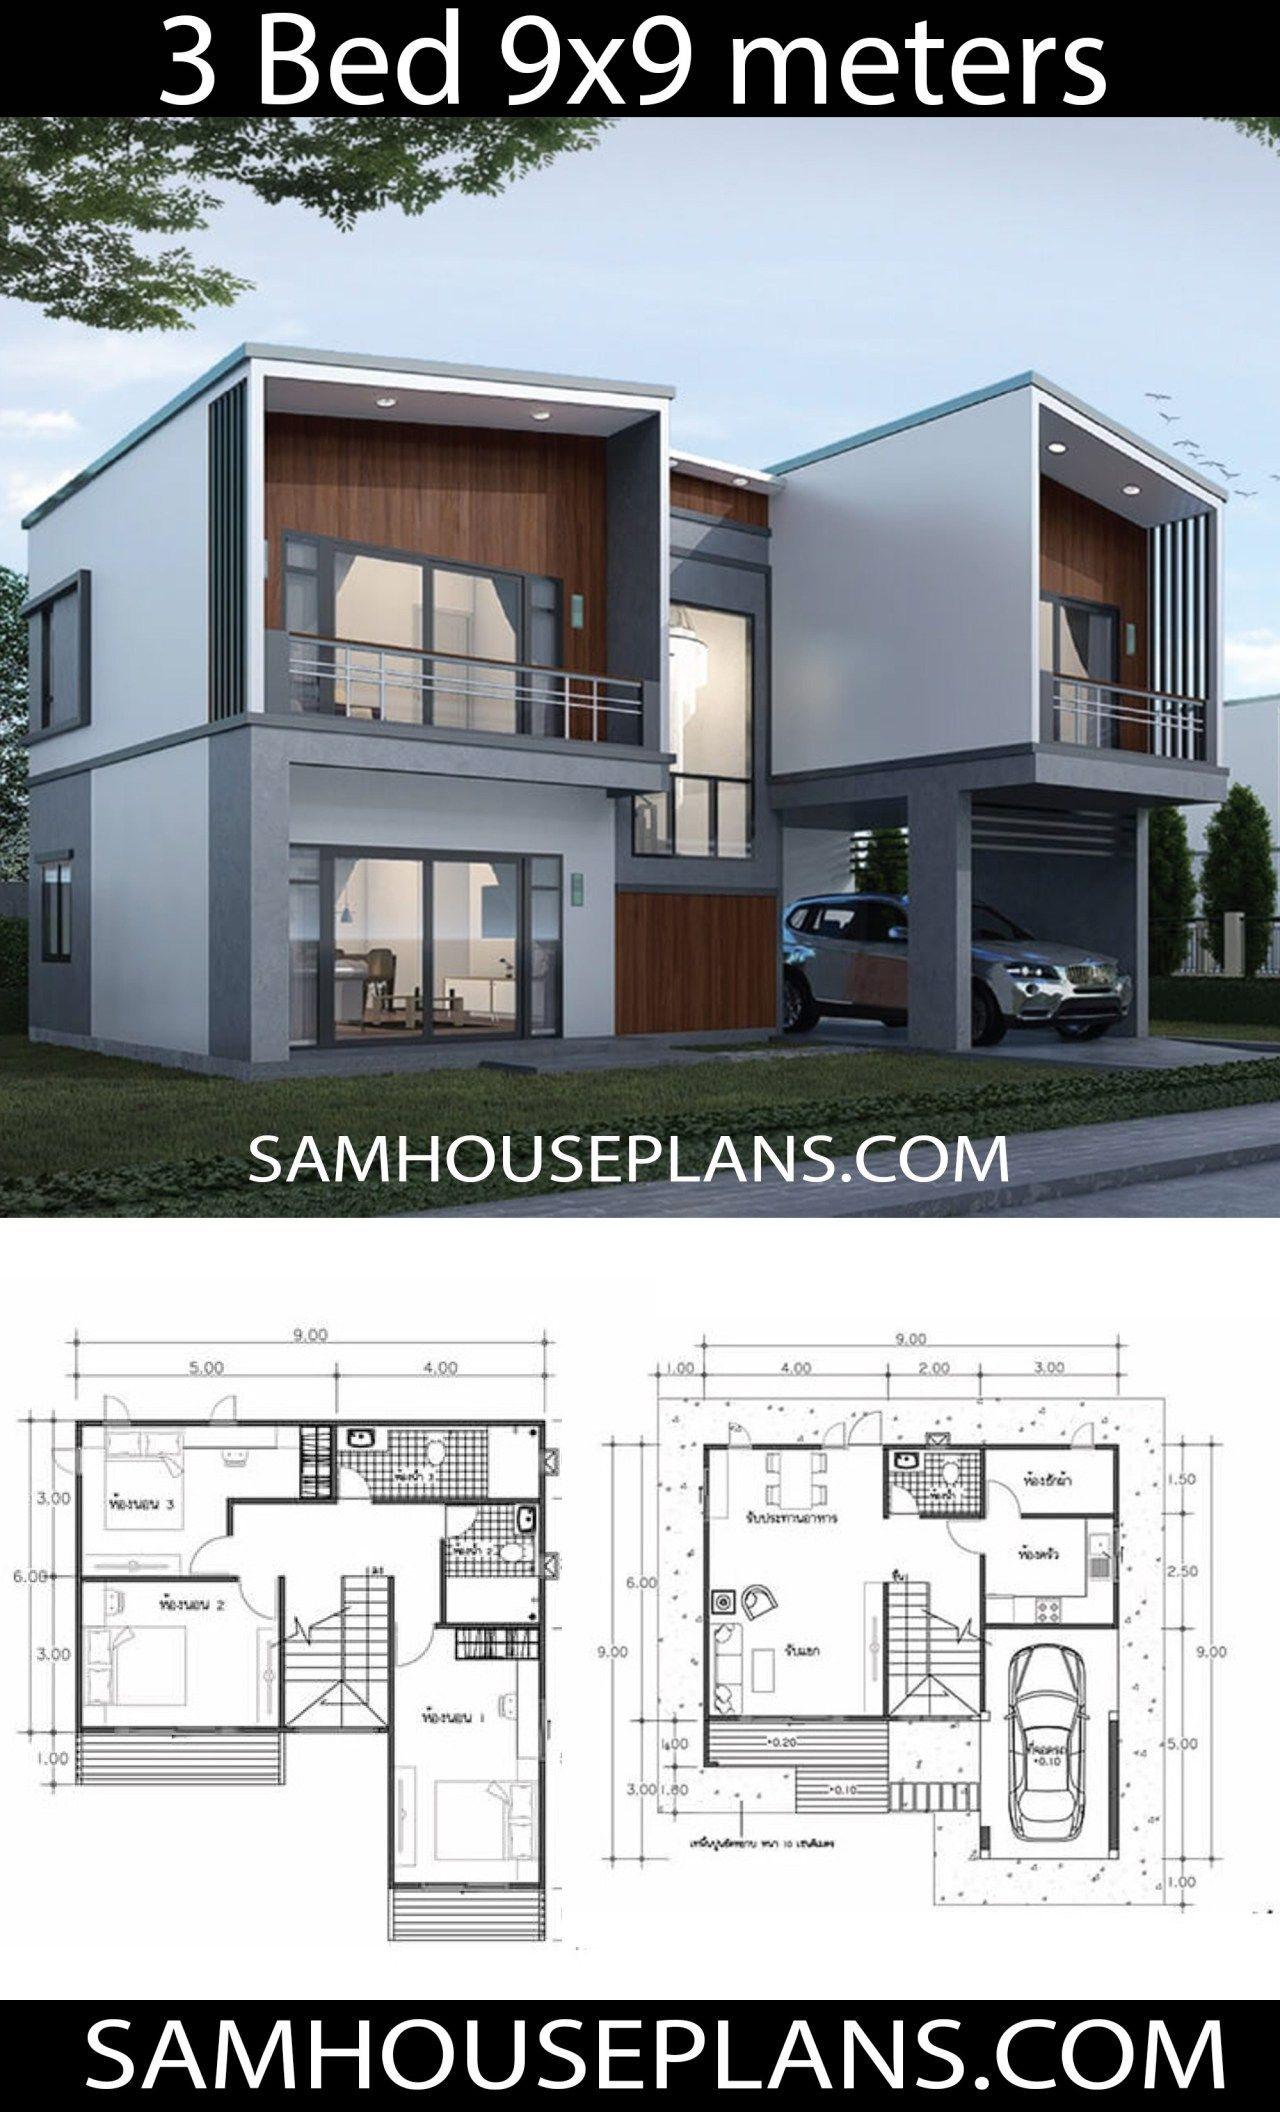 9x9 Room Design: House Plans Idea 9x9 With 3 Bedrooms In 2020